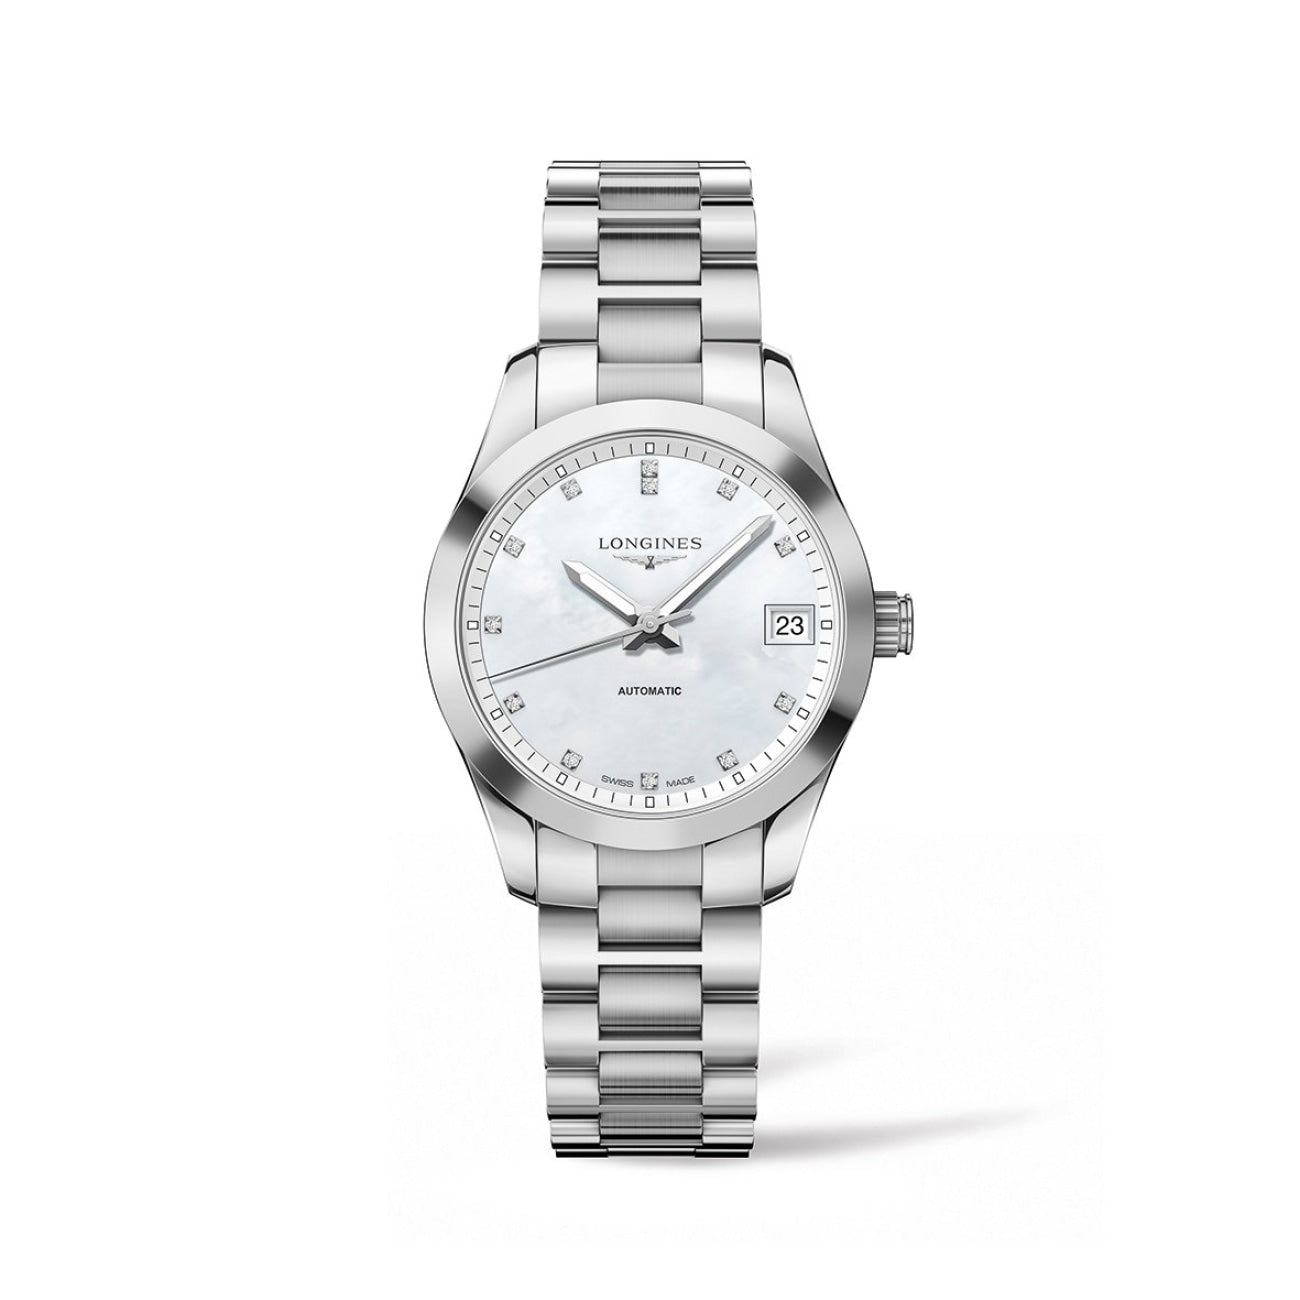 Longines Watches - Conquest Classic 34Mm Stainless Steel With Diamonds | Manfredi Jewels